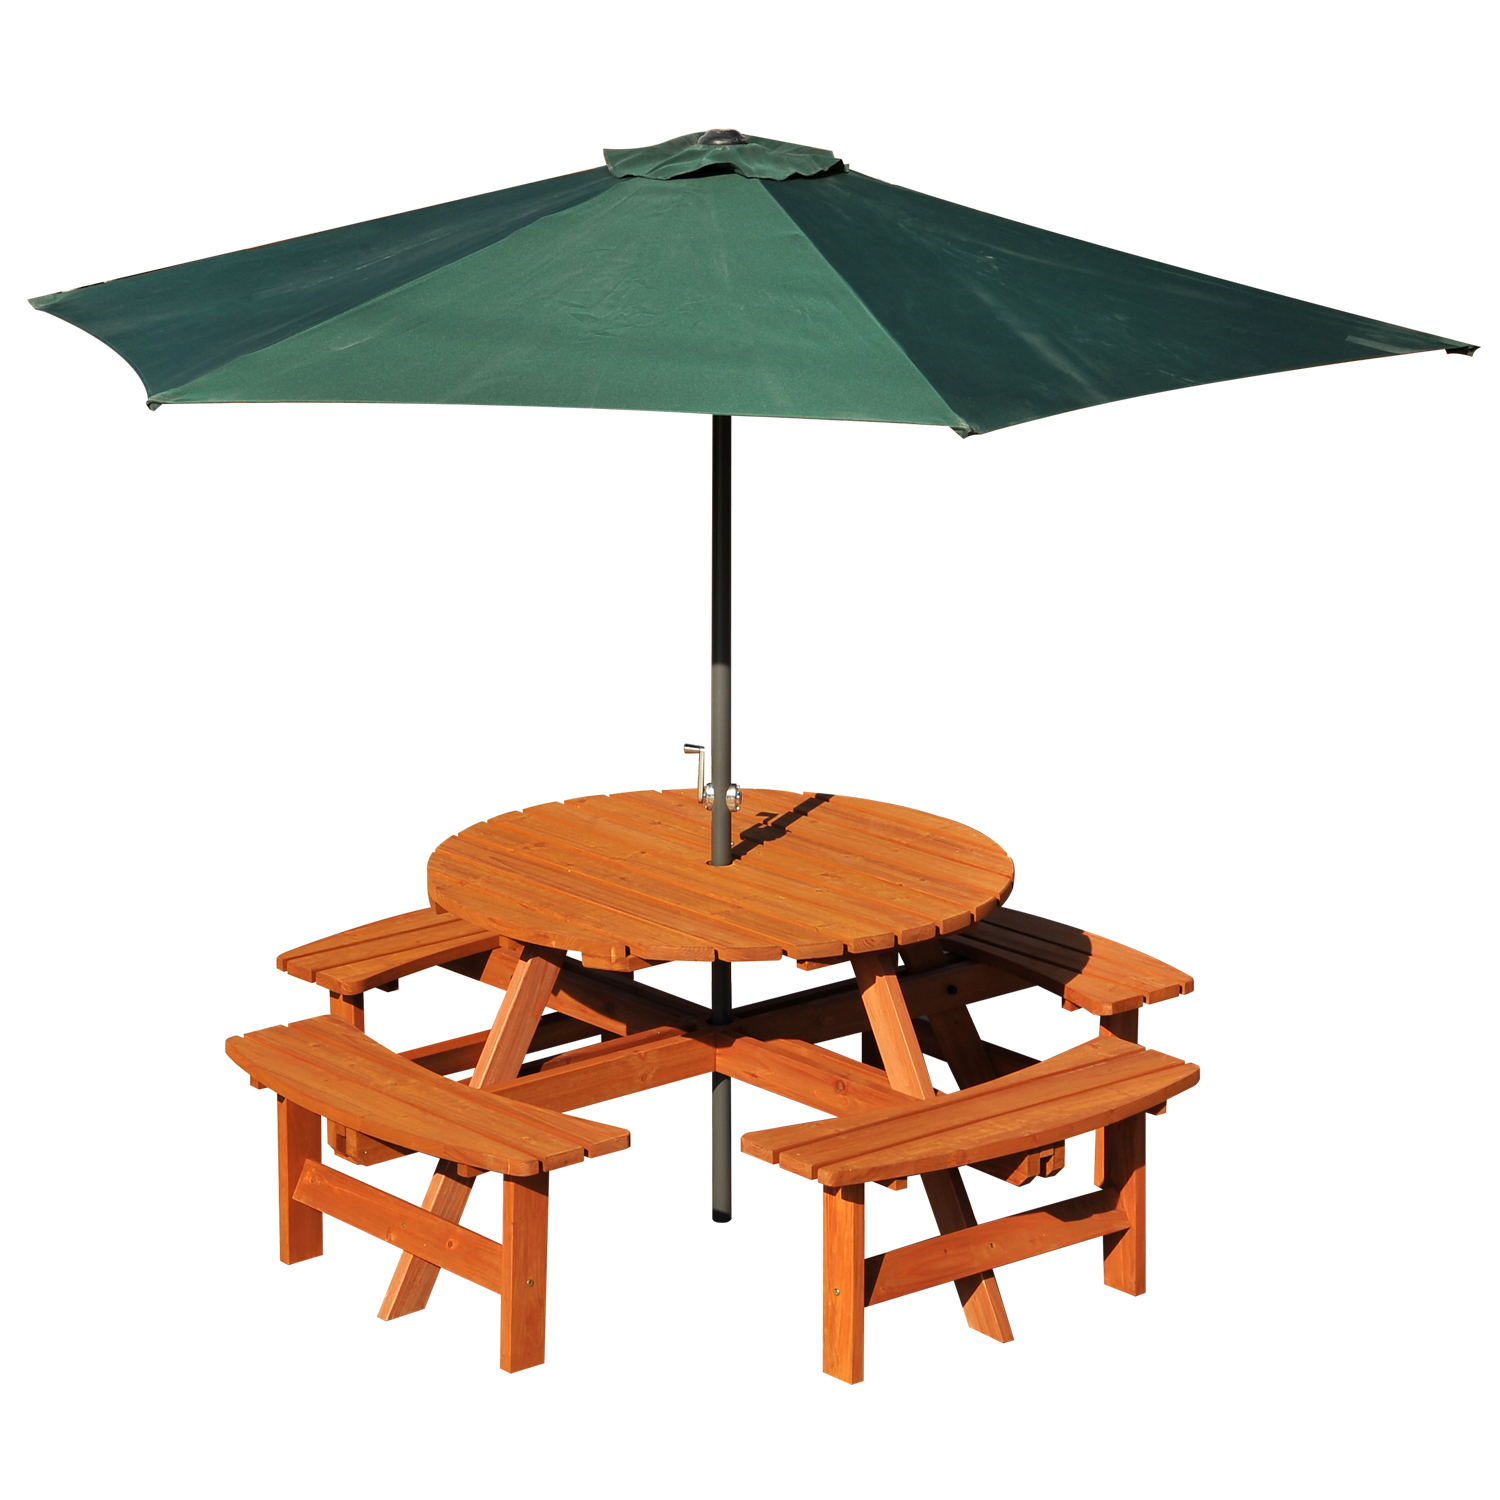 Image of £129.99 Outsunny 8-Seater Wooden Picnic Set-Fir Wood / 8 Seater Round Pub Bench Table Furniture Set for Outdoor Garden or Patio Dining with Seating 84B-192 5056029898857